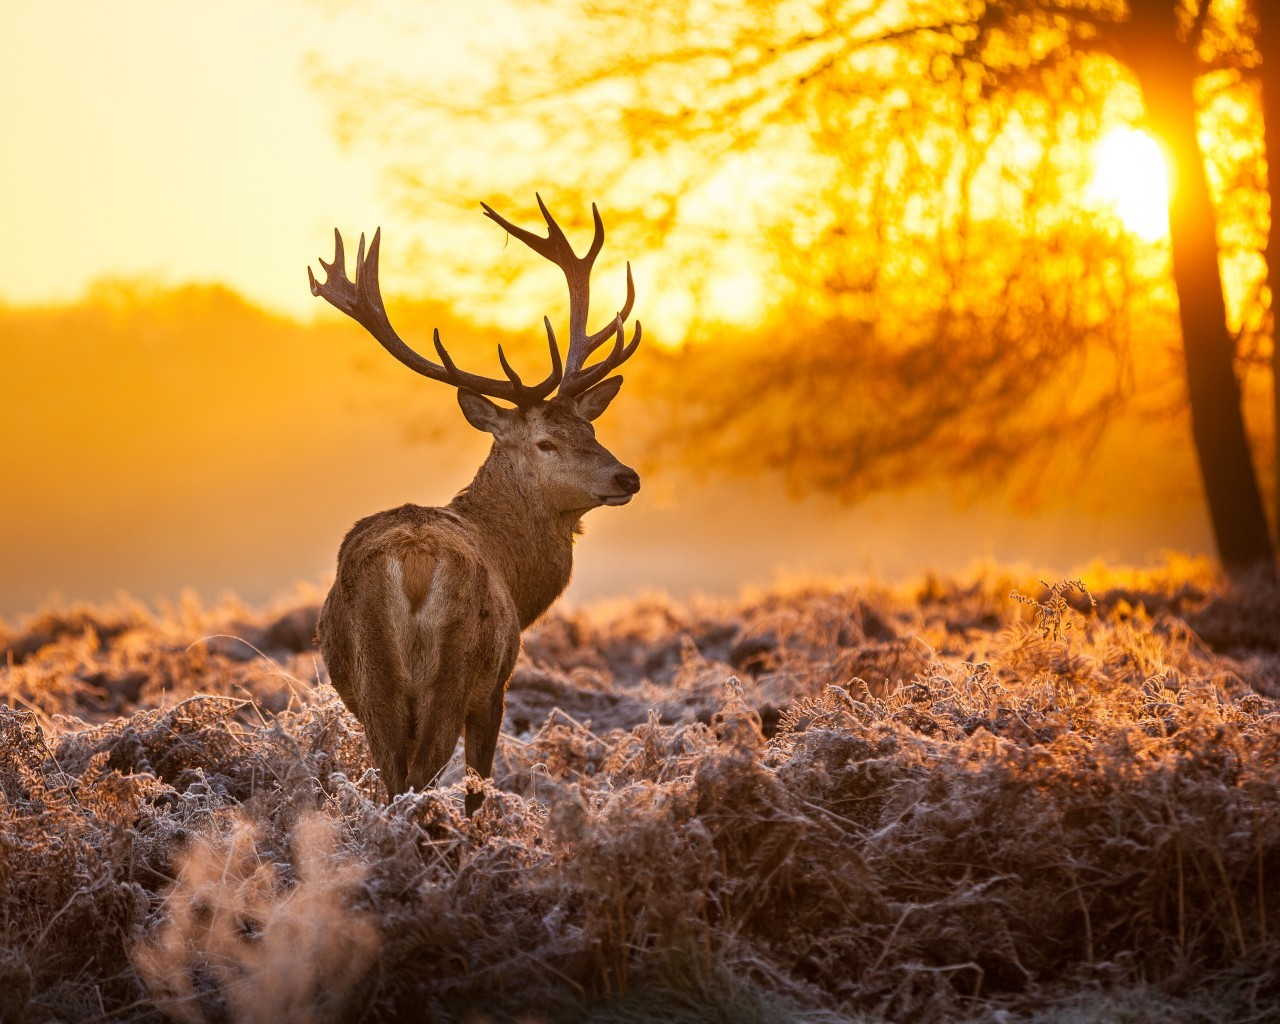 16902 download wallpaper Animals, Sunset, Deers screensavers and pictures for free